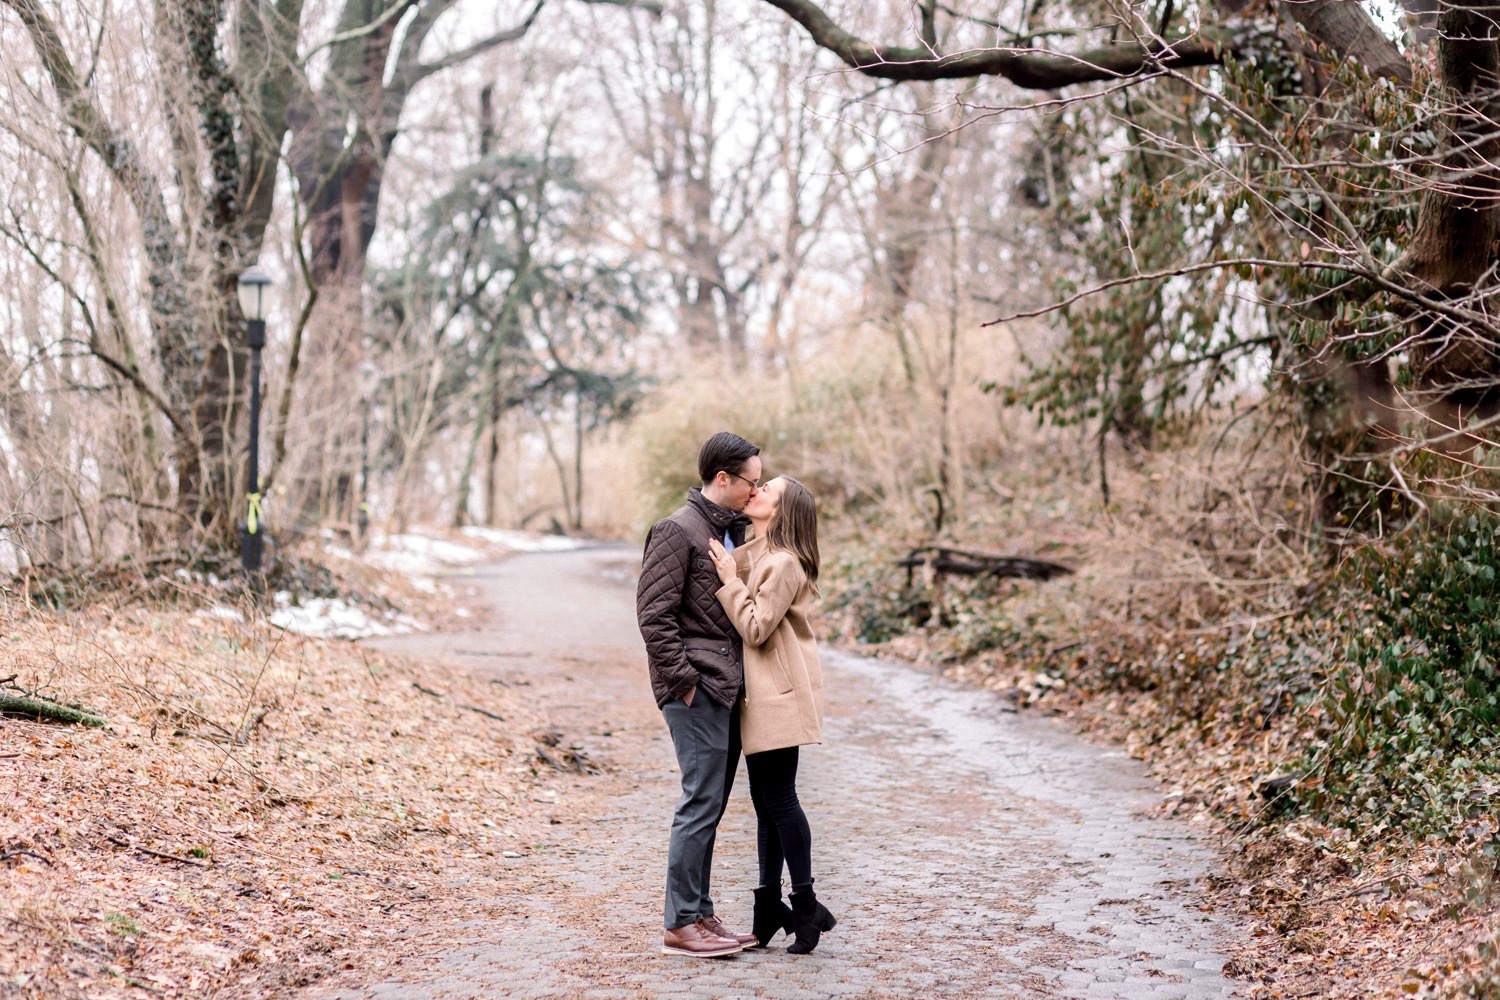 Prospect park engagement session, Prospect Park Engagement Photographer, Prospect Park Engagement Photo Session, Prospect Park proposal photographer, Prospect Park Winter engagement session, Prospect Park Wedding Photographer, Brooklyn Wedding Photographer, NYC Wedding Photographer, Wedding Photographers in Brooklyn, Wedding Photographers in NYC, Wedding Photographers in Prospect Lefferts Gardens, Prospect Park wedding photos, Best wedding photographers in Brooklyn, Best wedding photographers in NYC, Wedding photographers in Brooklyn, wedding photographers on the knot Brooklyn